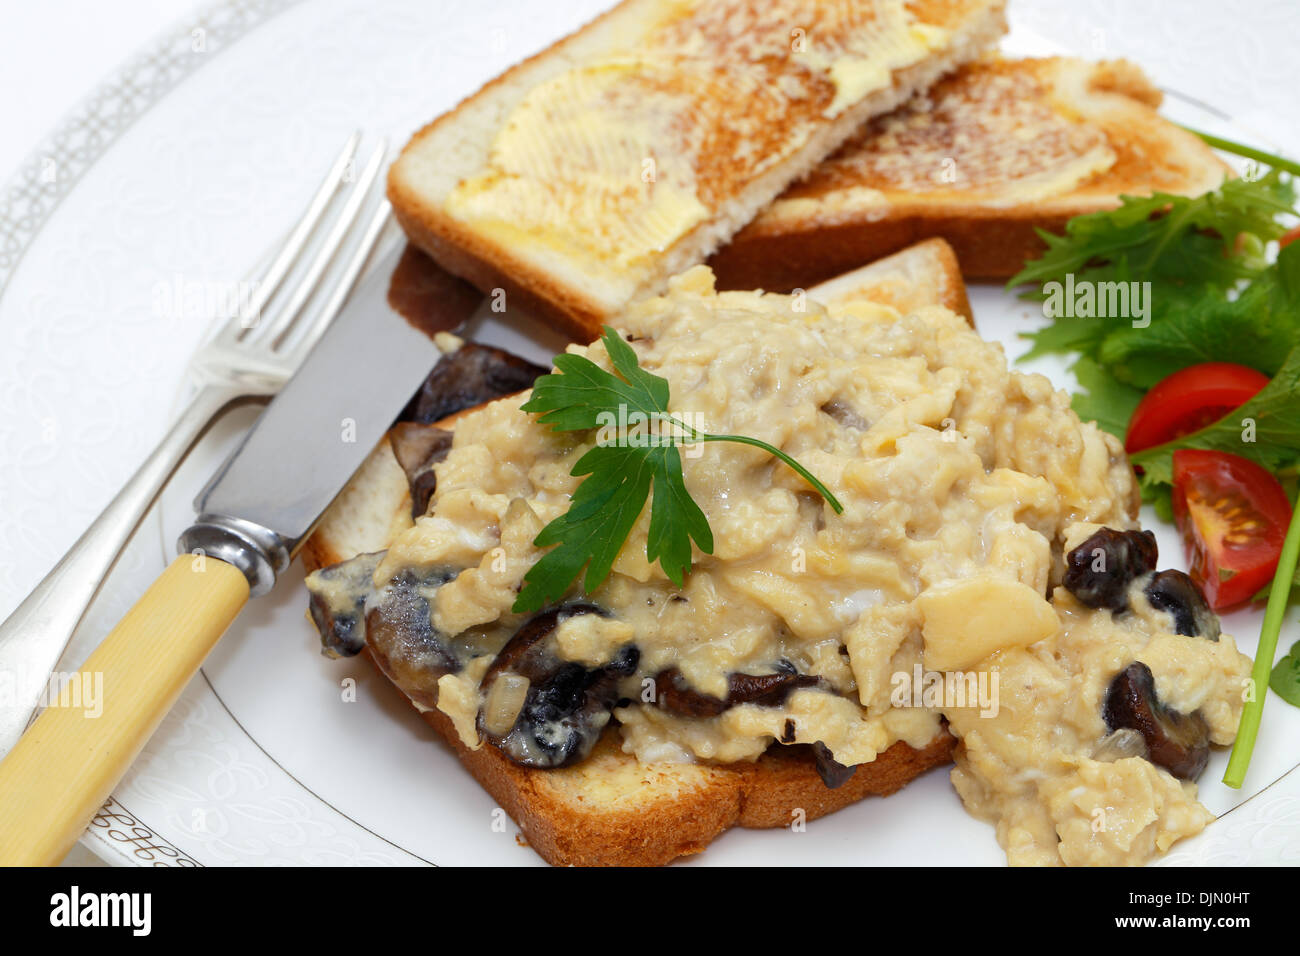 A breakfast or light lunch of scrambled eggs on toast made with fried mushrooms and shallots, Stock Photo